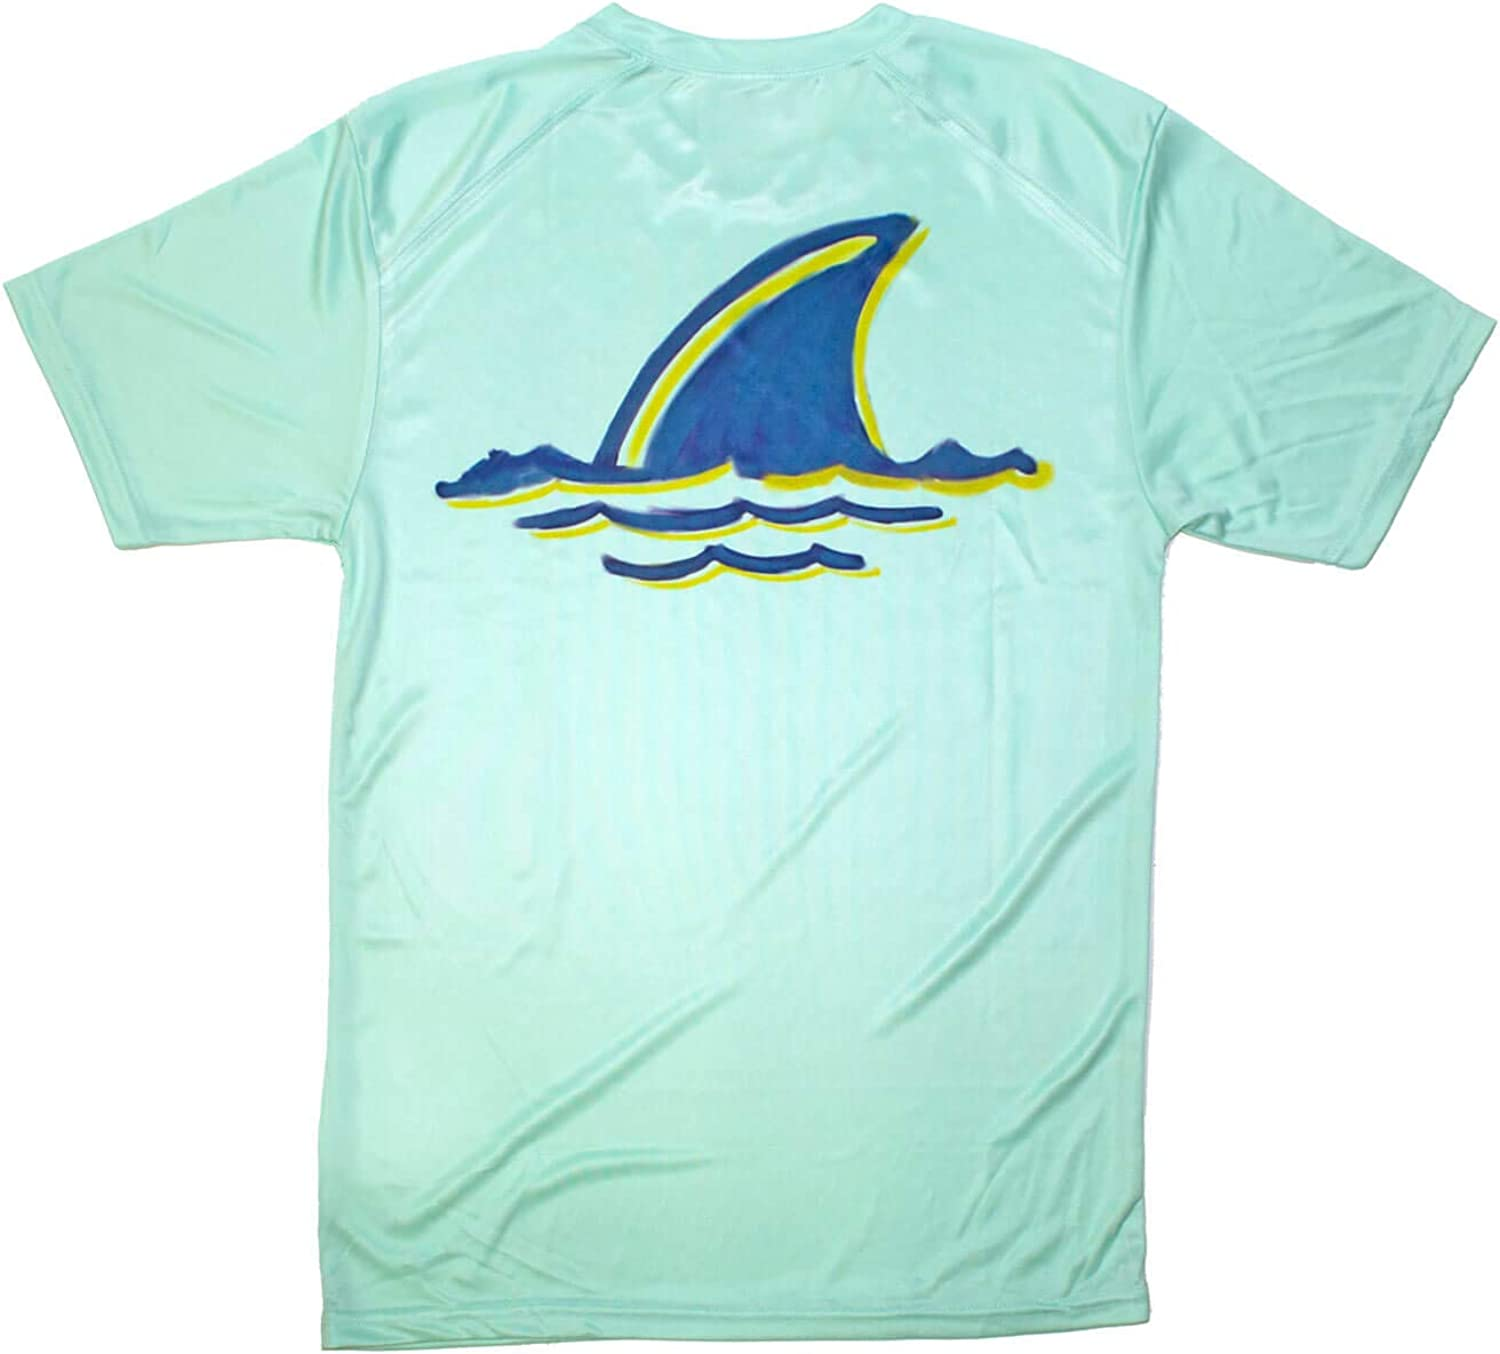 Margaritaville Men's Landshark Fins Up Microfiber Short Sleeve Performance T-Shirt